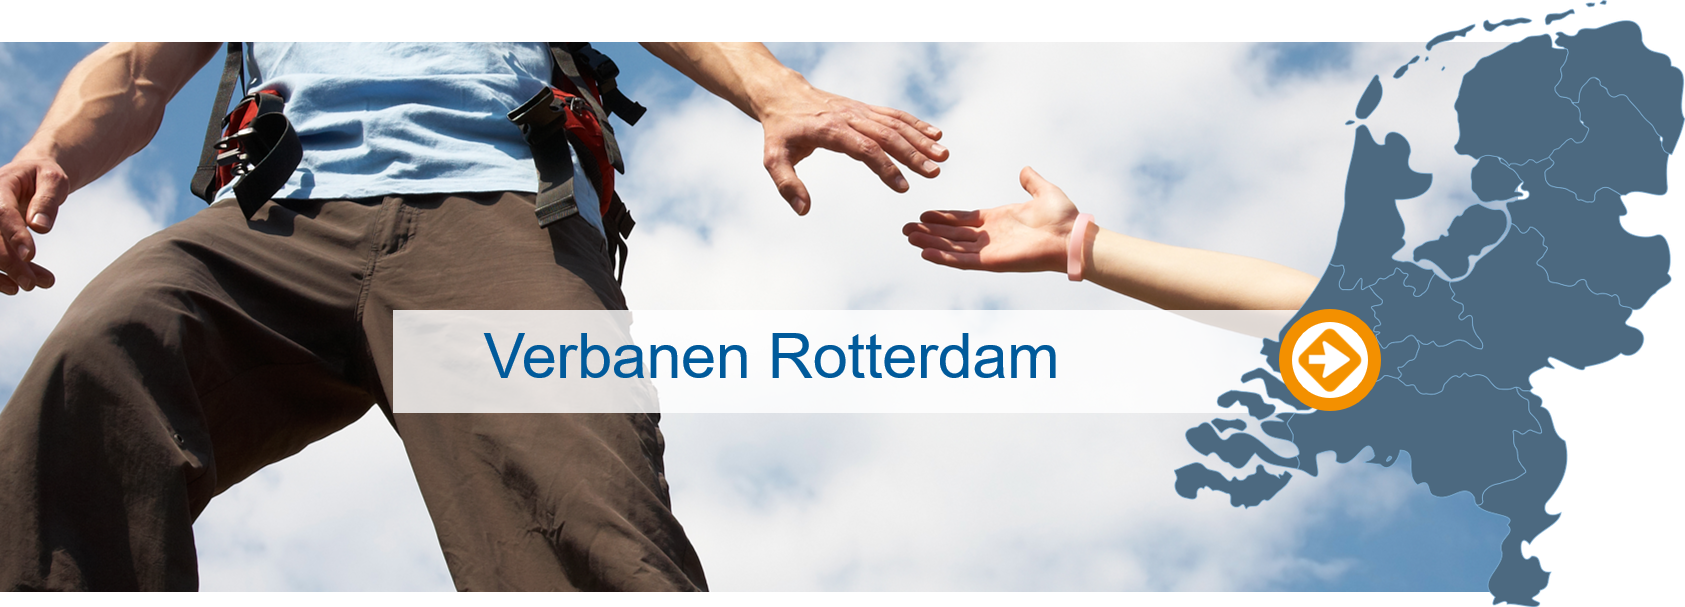 Verbanen Rotterdam | re-integratie, outplacement en loopbaancoaching